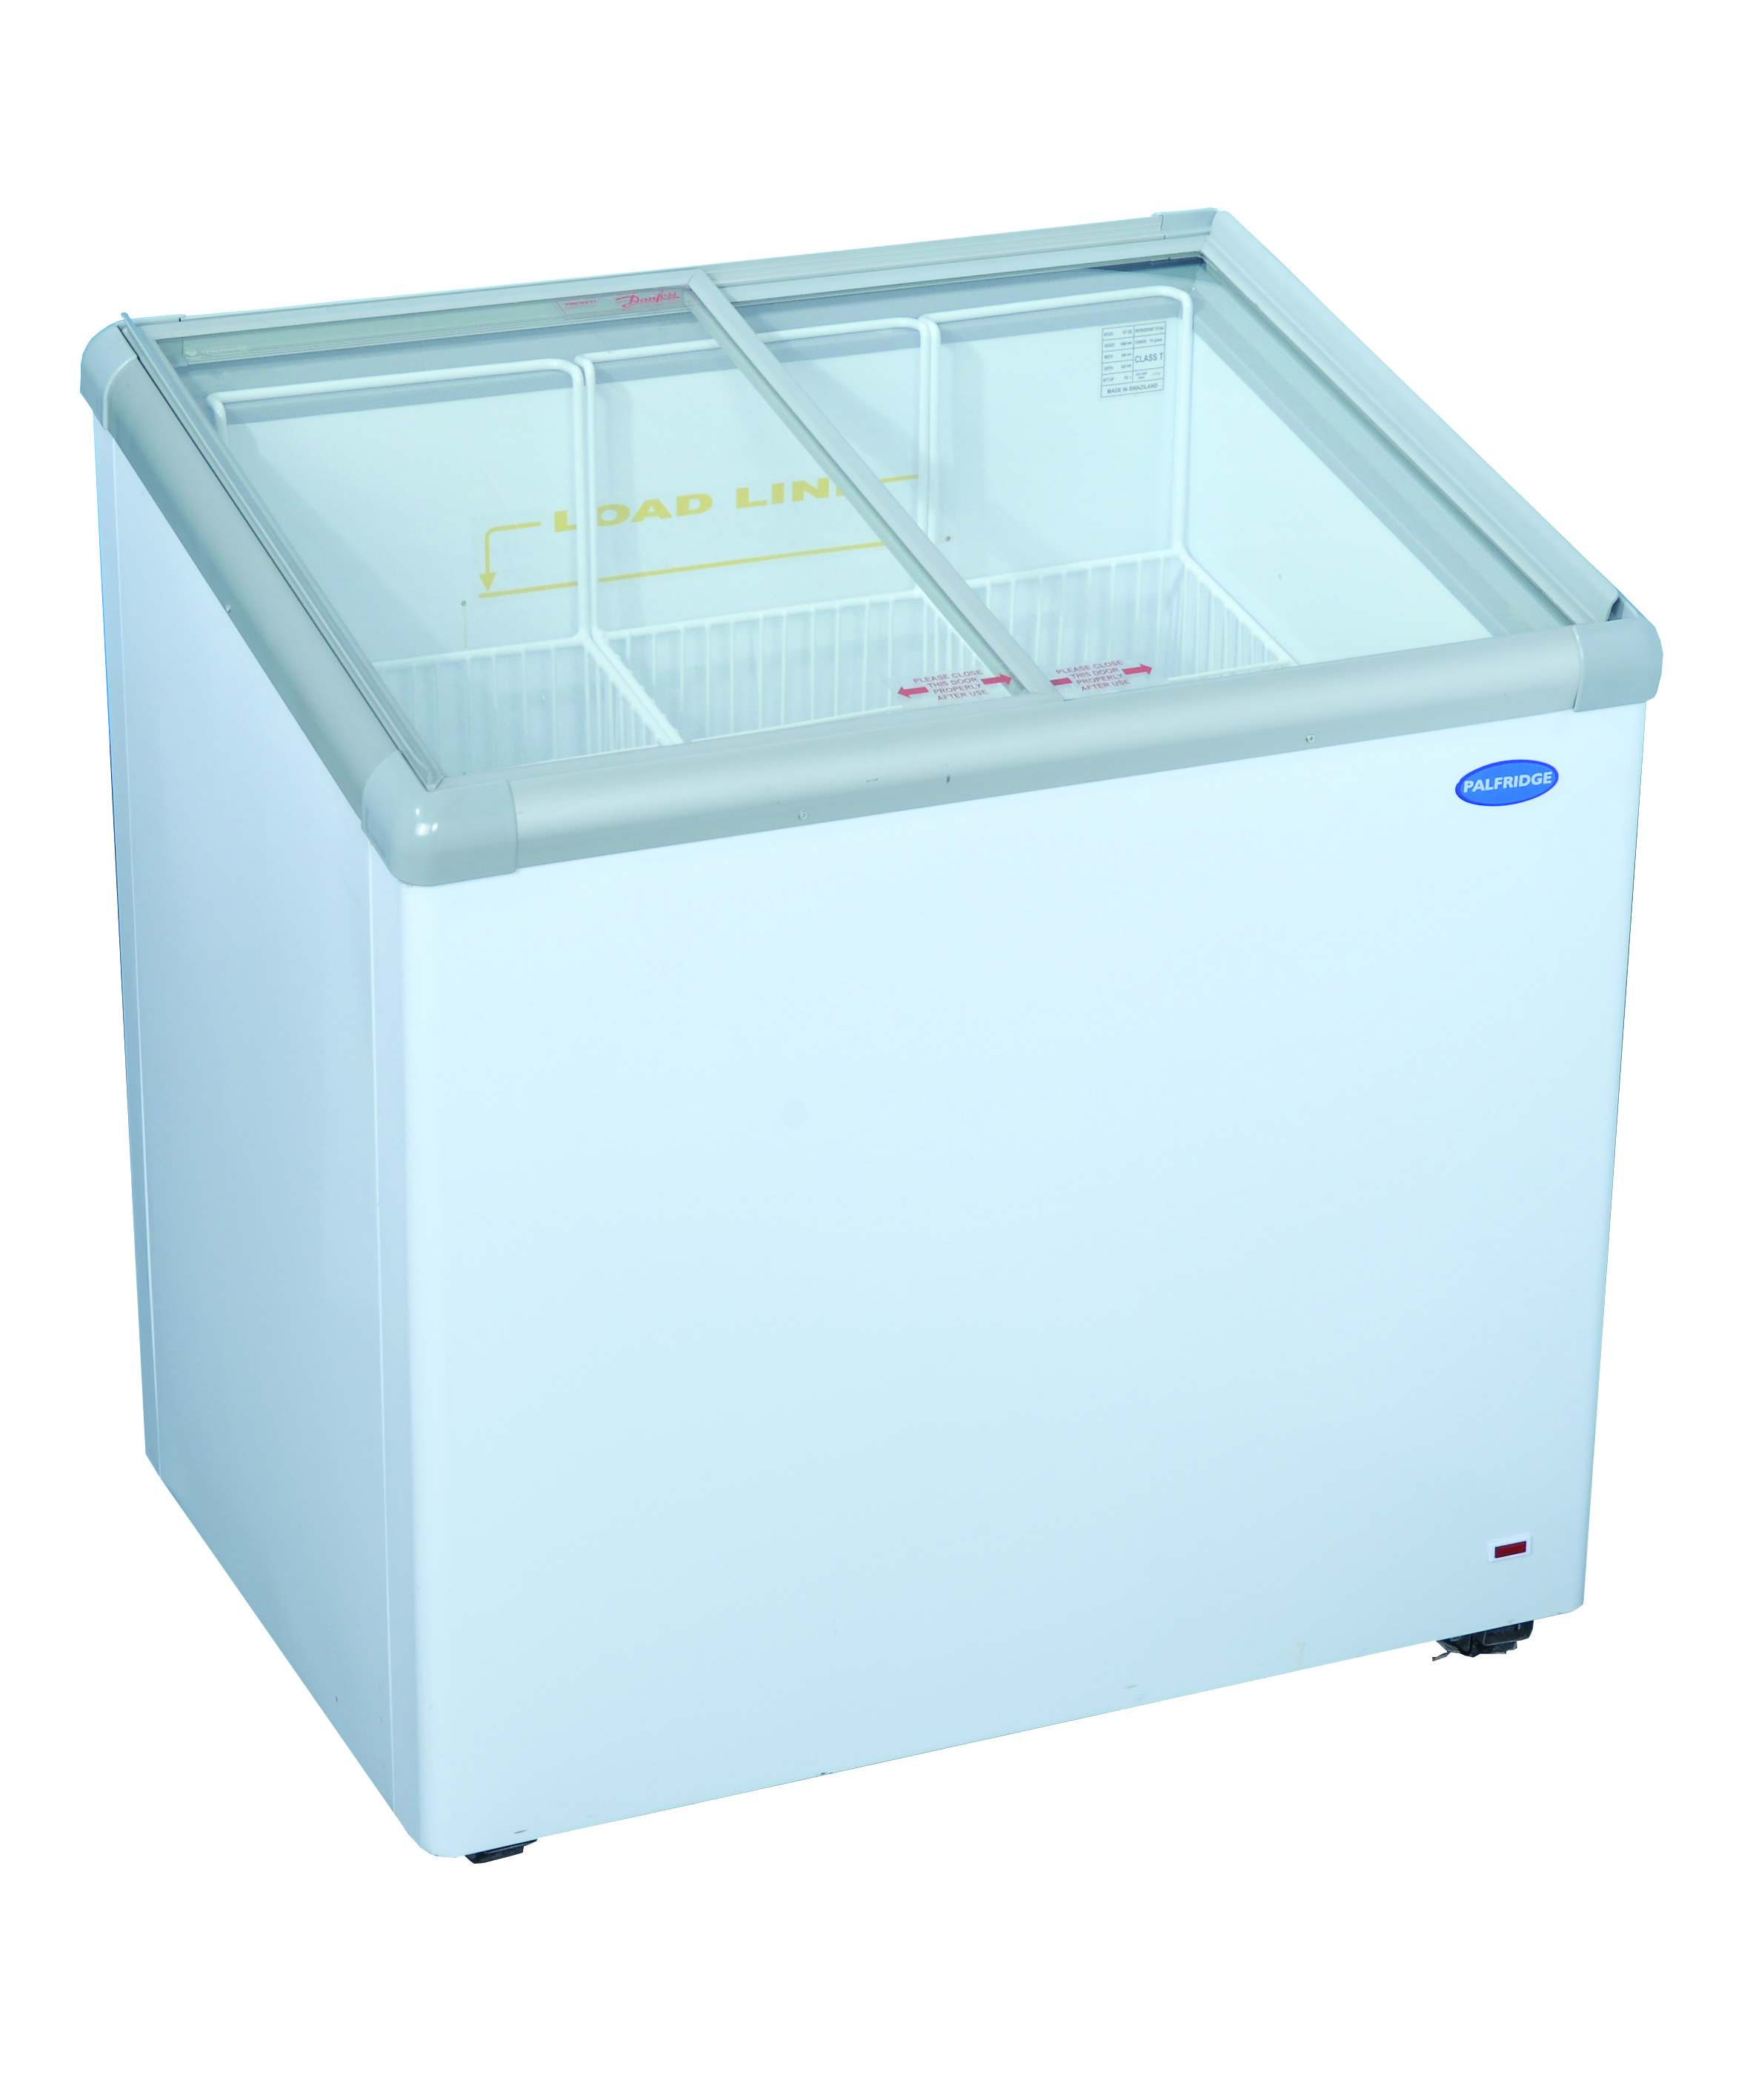 Fridge Star Model Vi202 L Glass Top Ice Cream Freezer